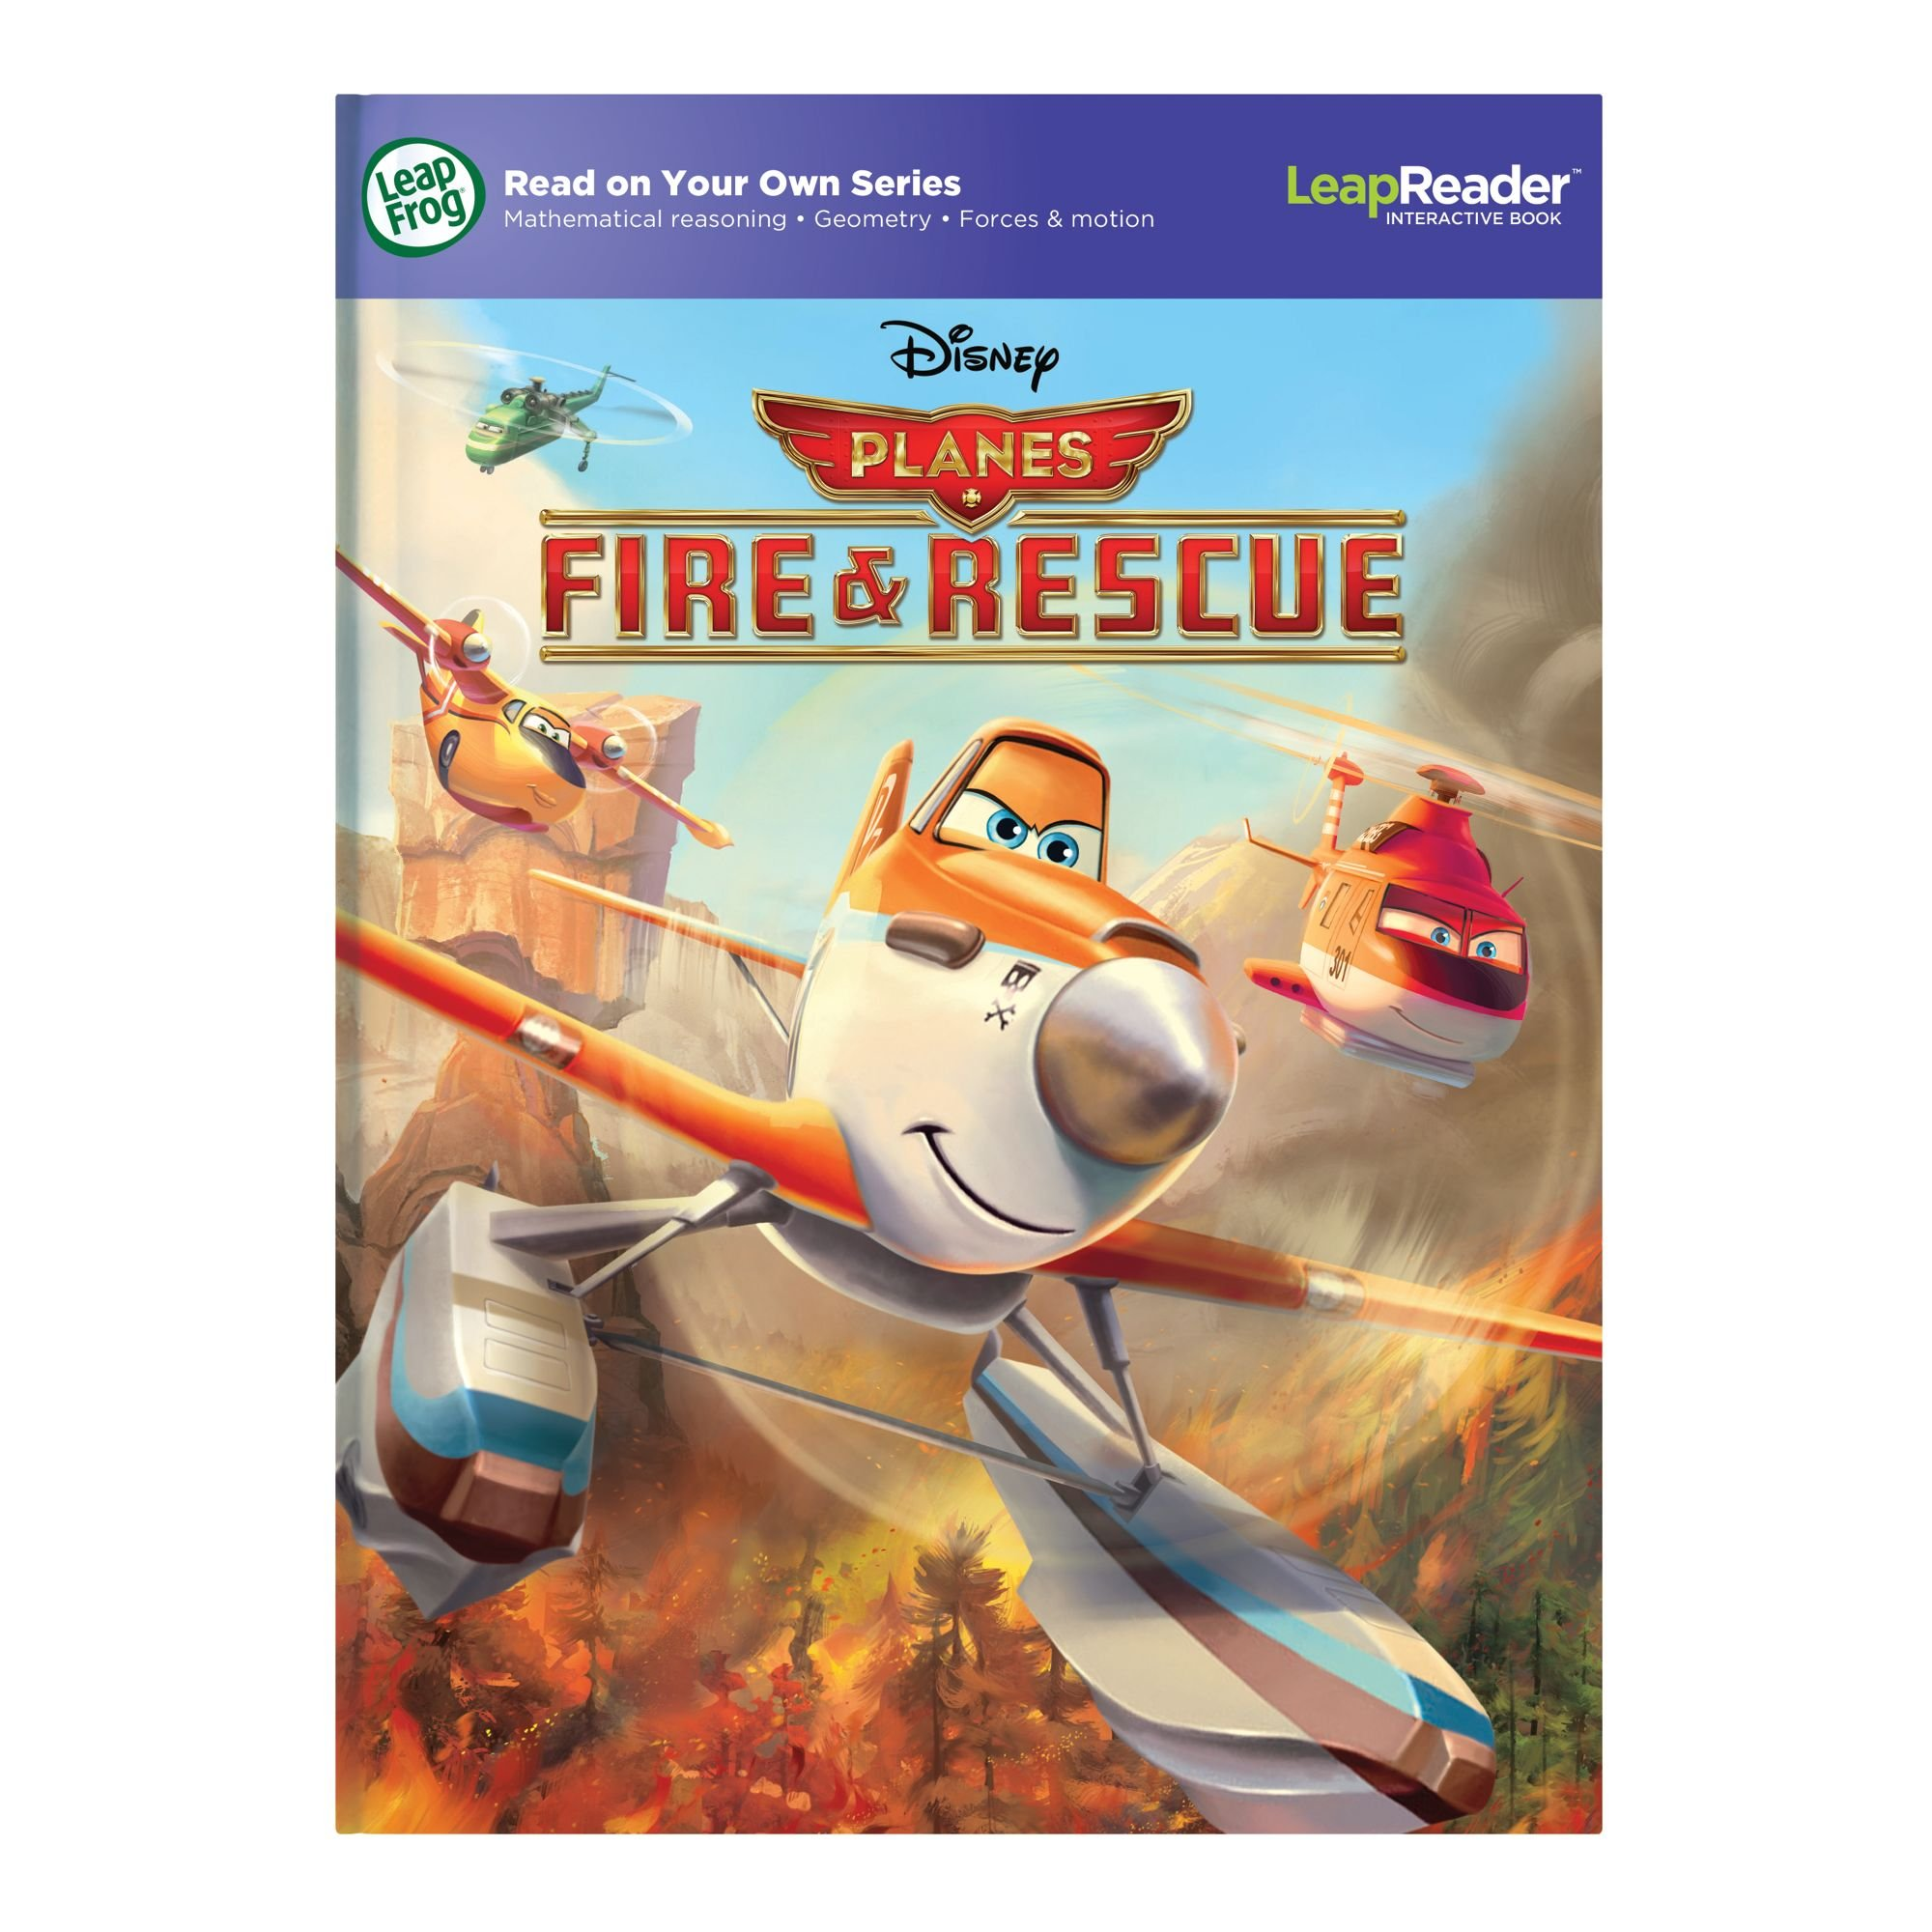 LeapFrog LeapReader Book: Disney Planes Fire and Rescue by LeapFrog (Image #5)